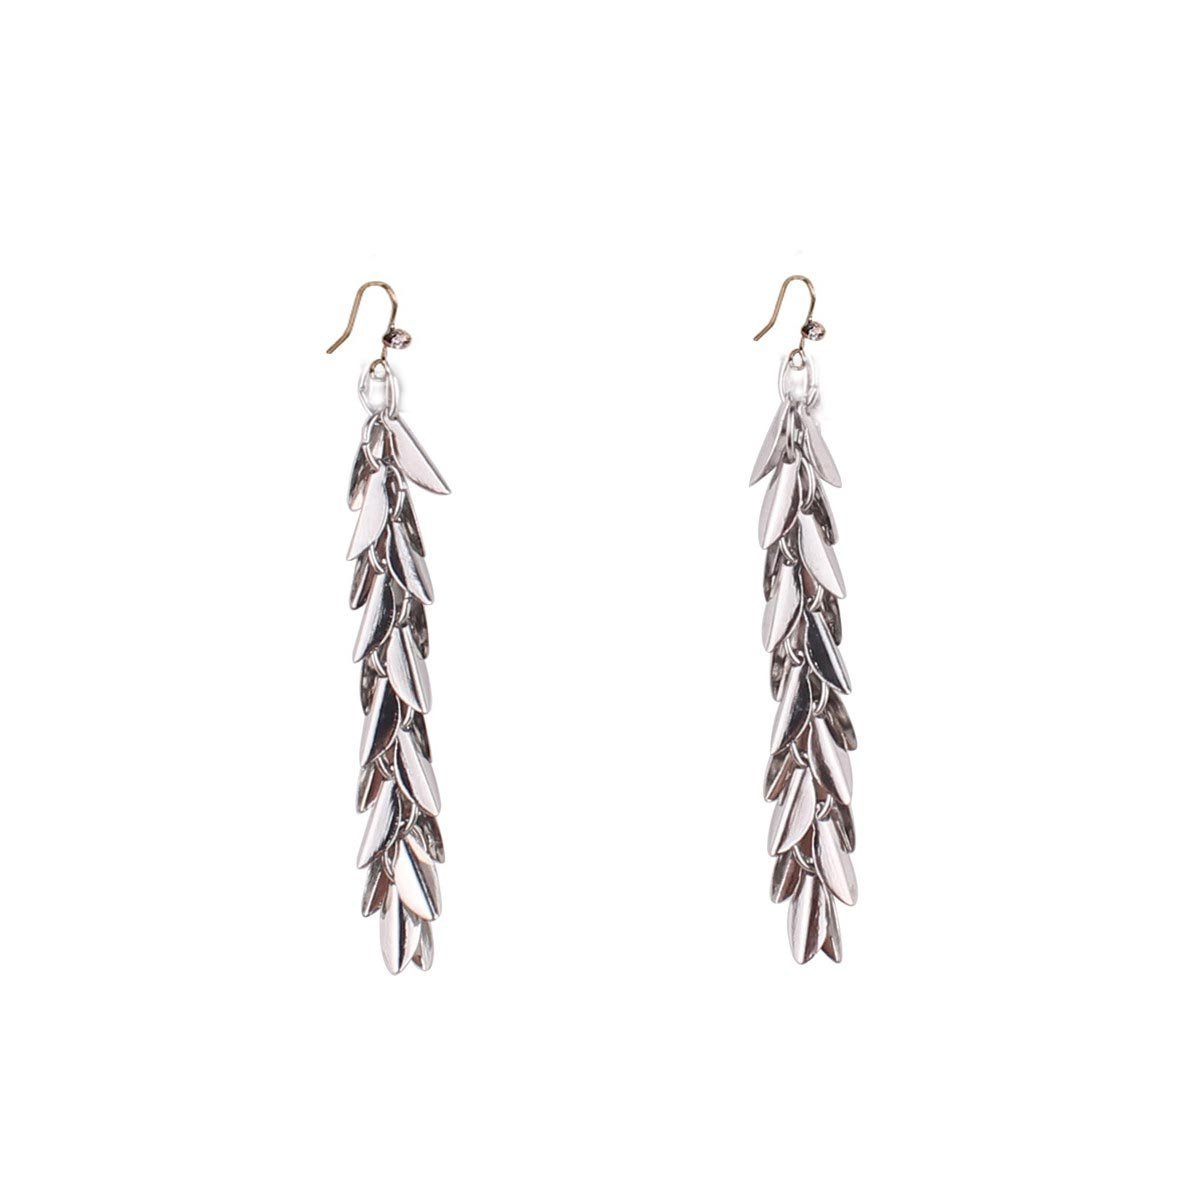 Grace Jun Silver Plated CZ Rhinestone Long Tassel Drop Earrings and Clip on Earrings No Pierced for Women China XHEJ247